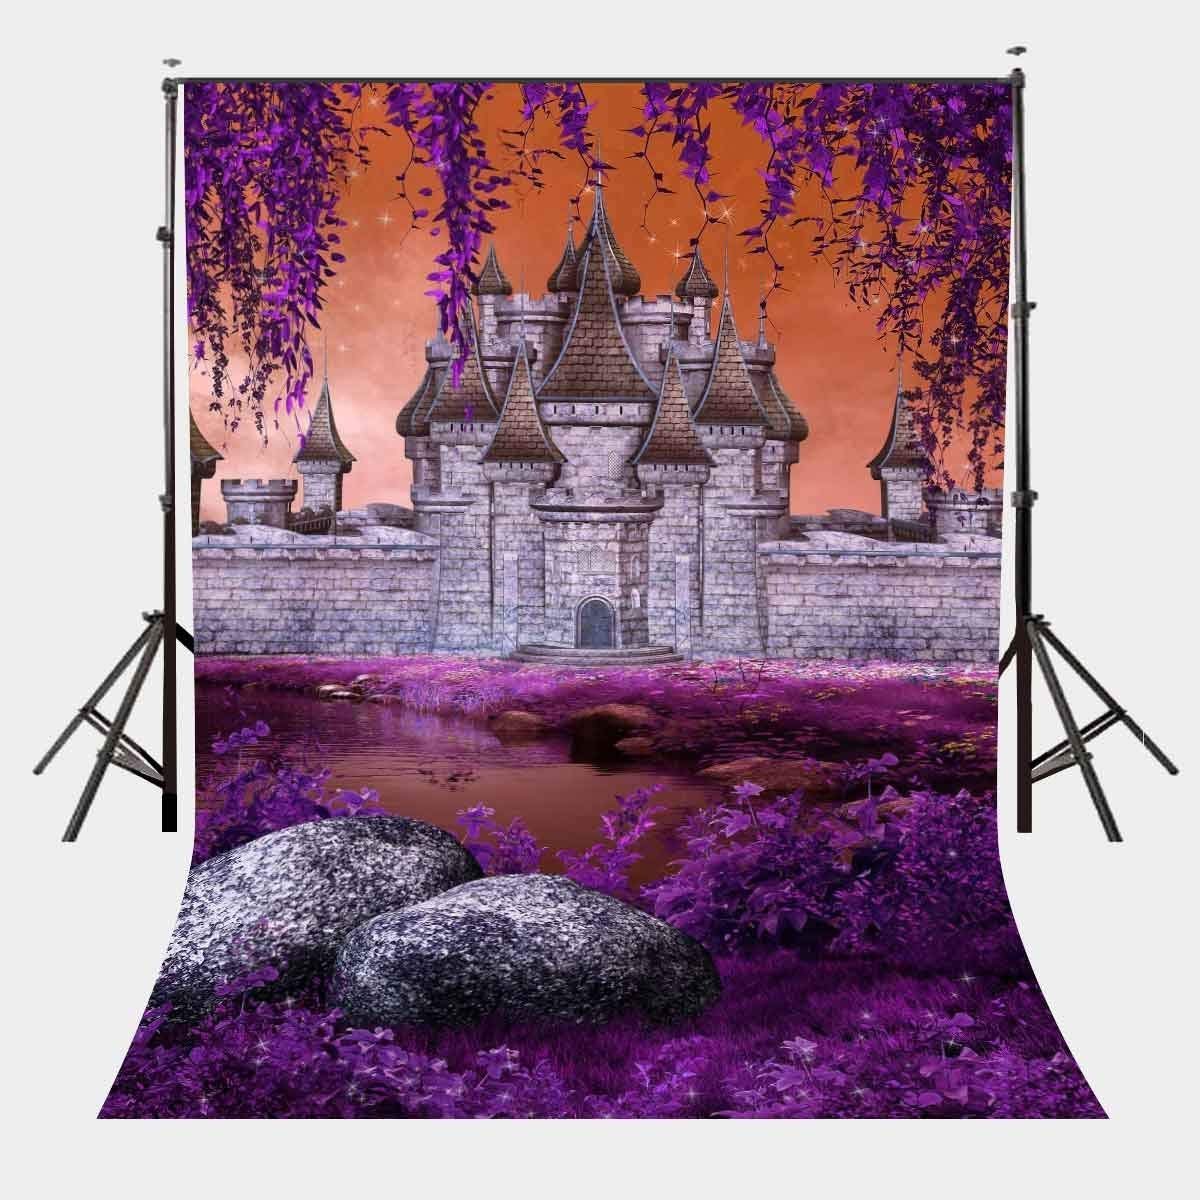 ERTIANANG 150x220cm River Beach View Backdrop Standing Castle Background Ultra Violet Color Flower Backdrop